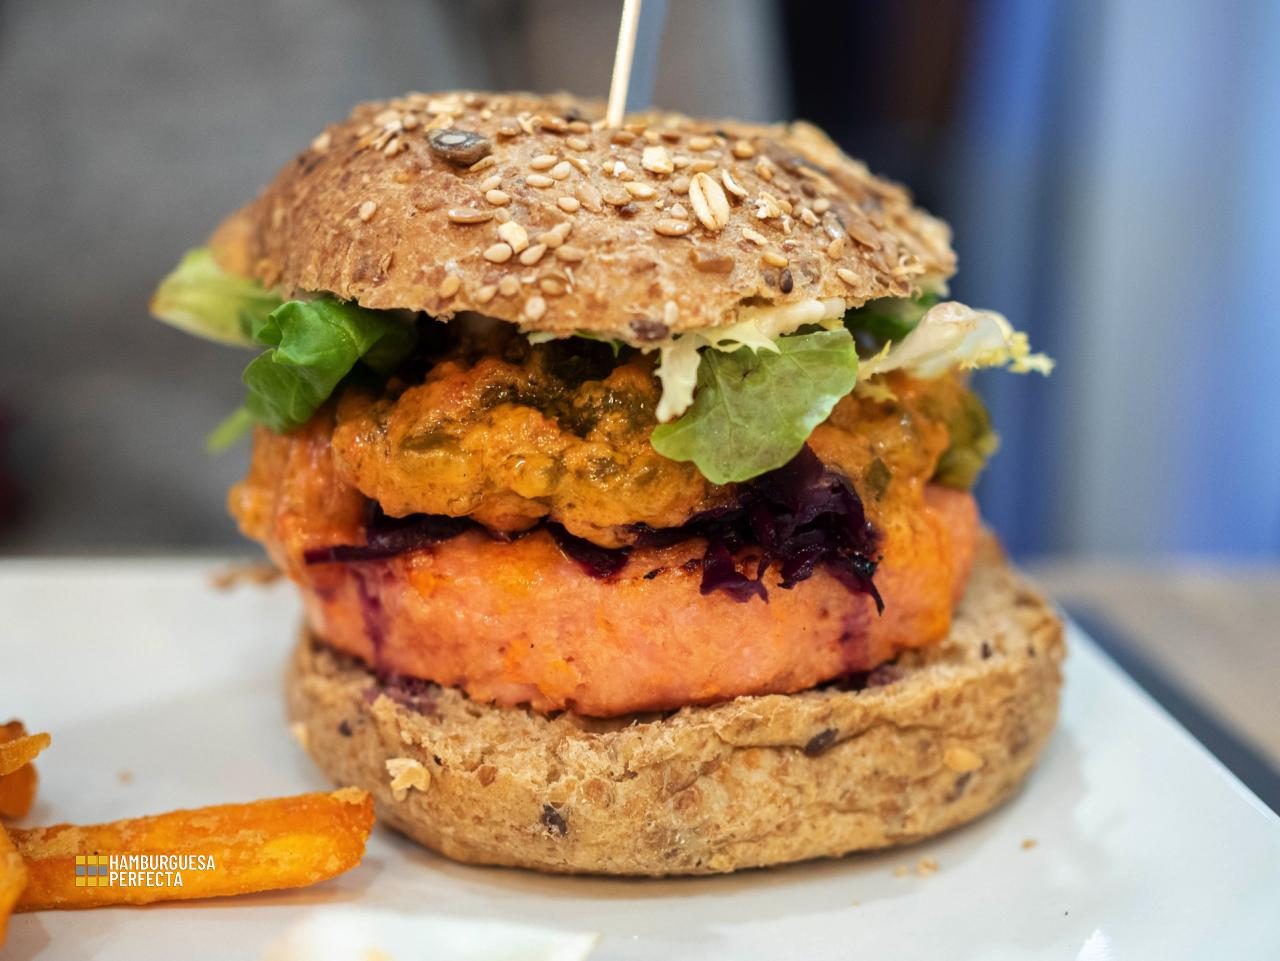 Healthy Burger Sublime Hernani